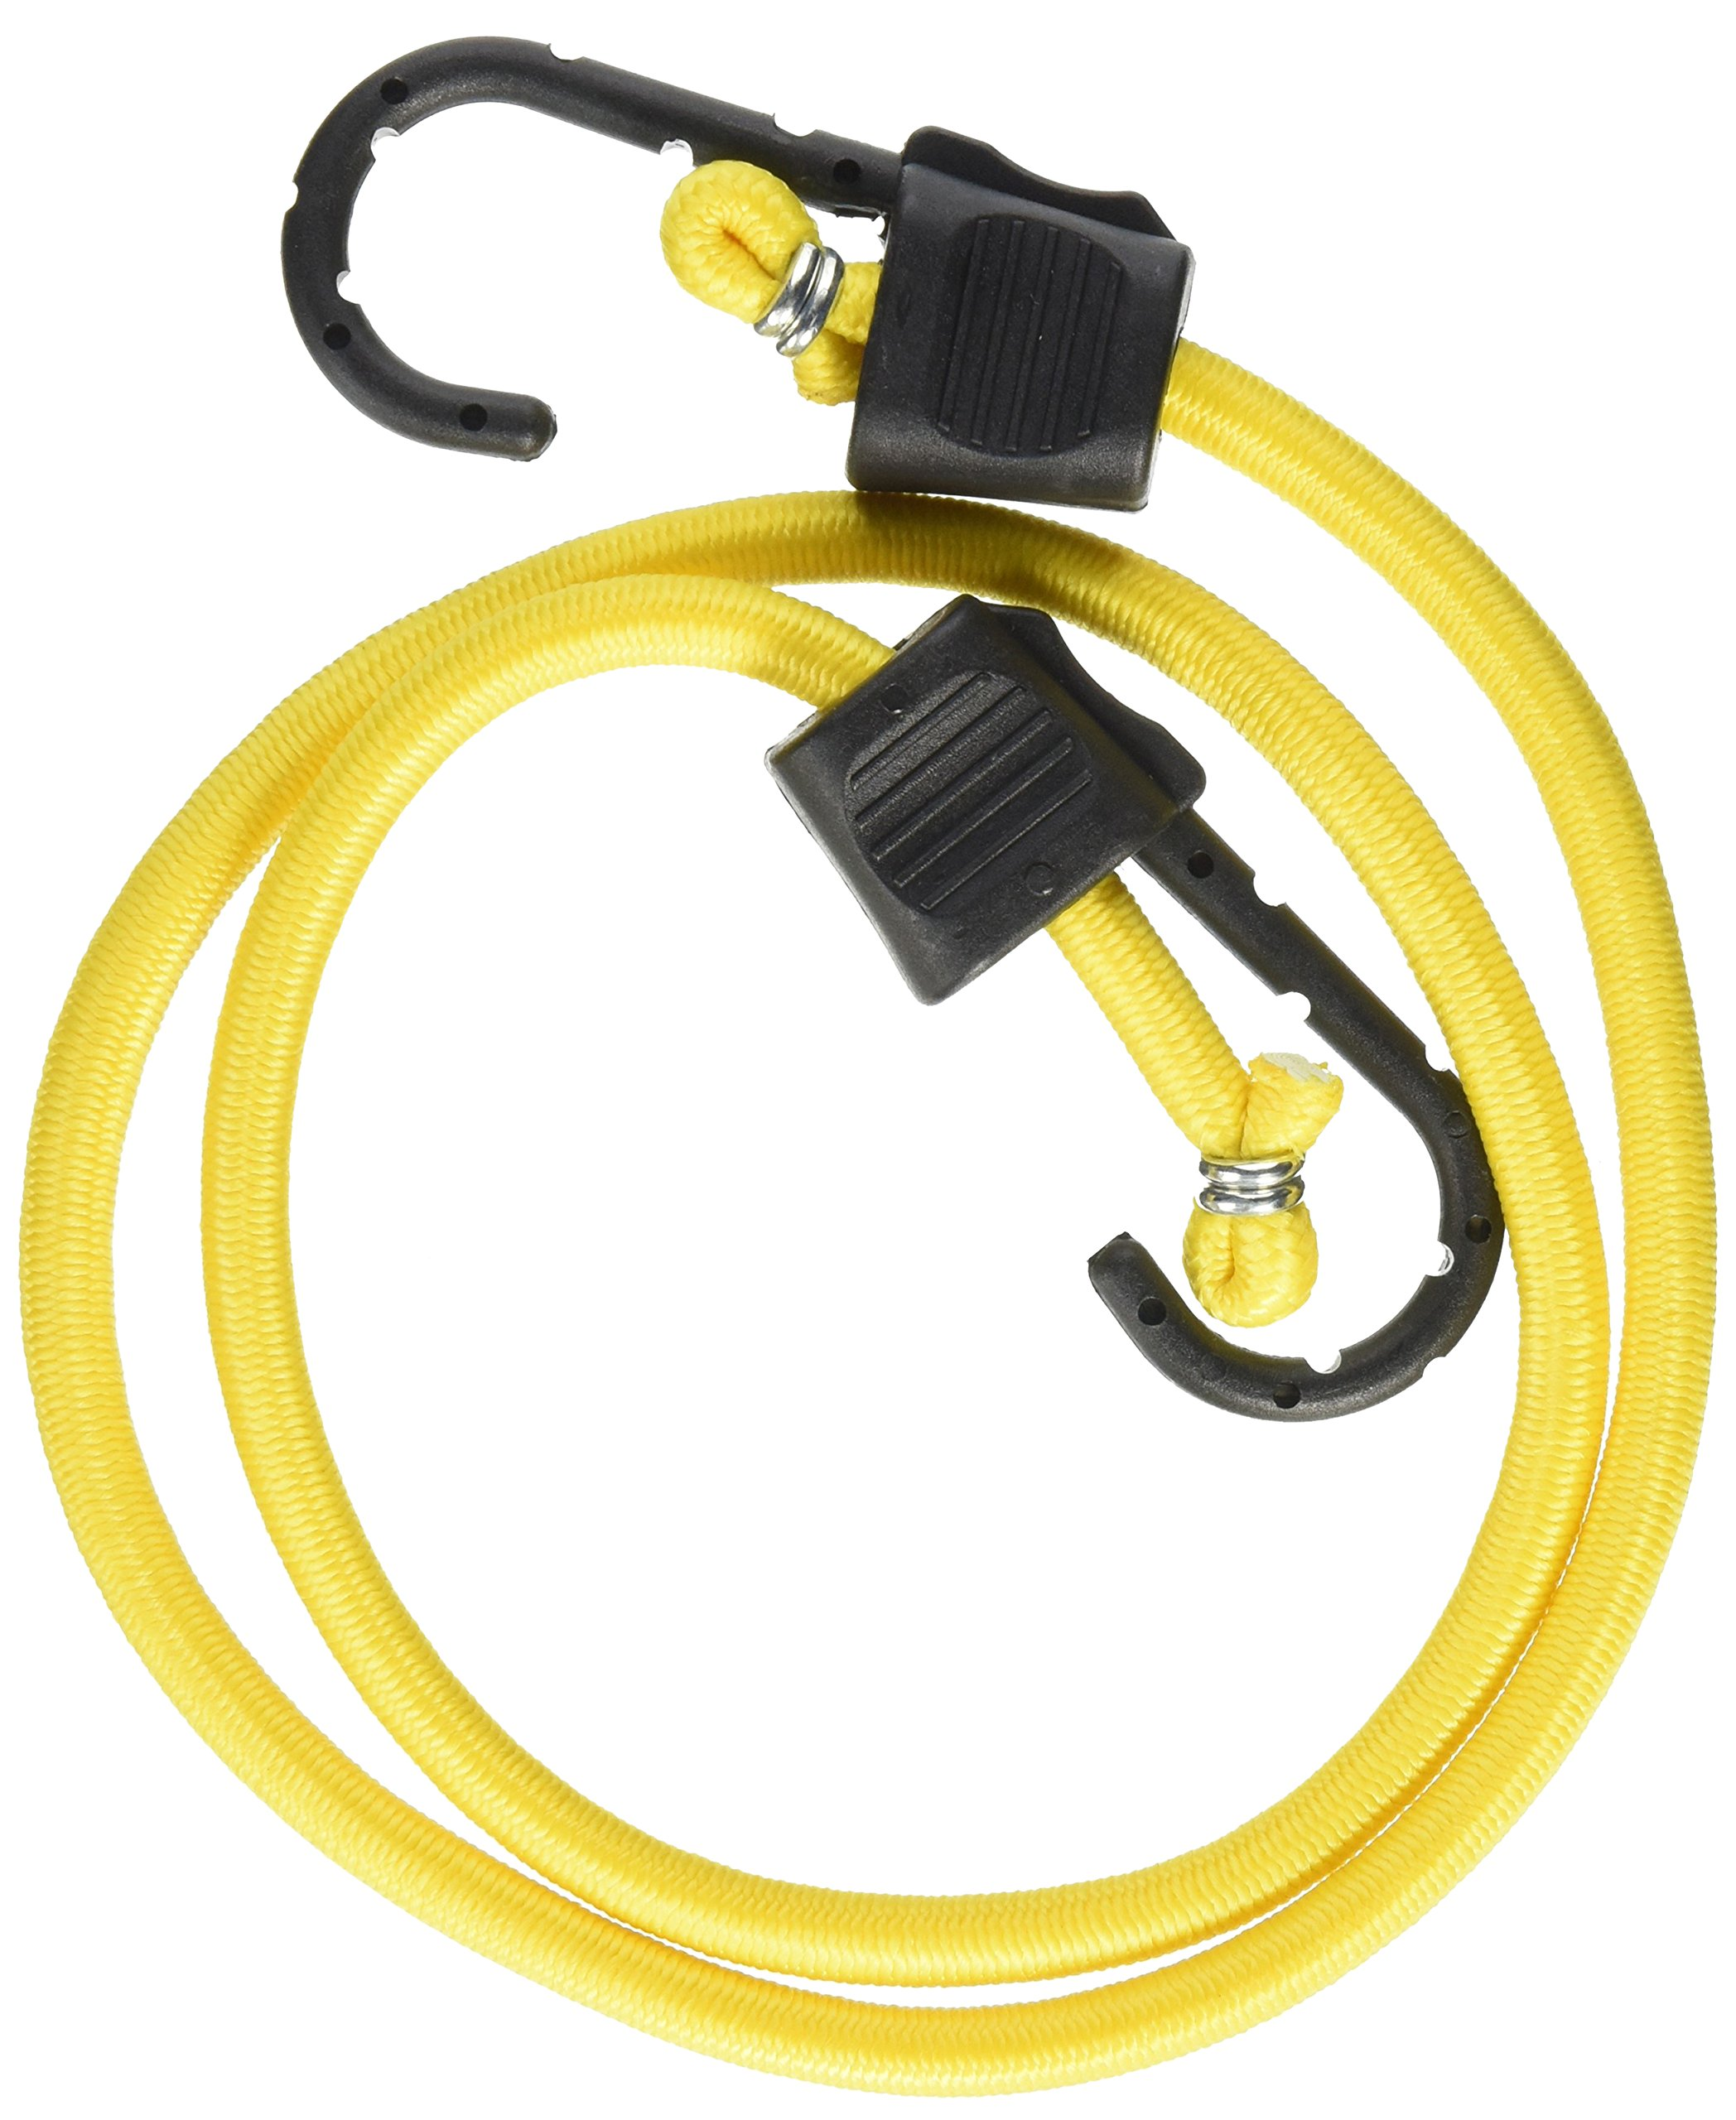 RoadPro RPJS-HD40 40'' Heavy Duty Stretch Cords with Anti-Scratch Hooks, (Pack of 2) by RoadPro (Image #1)